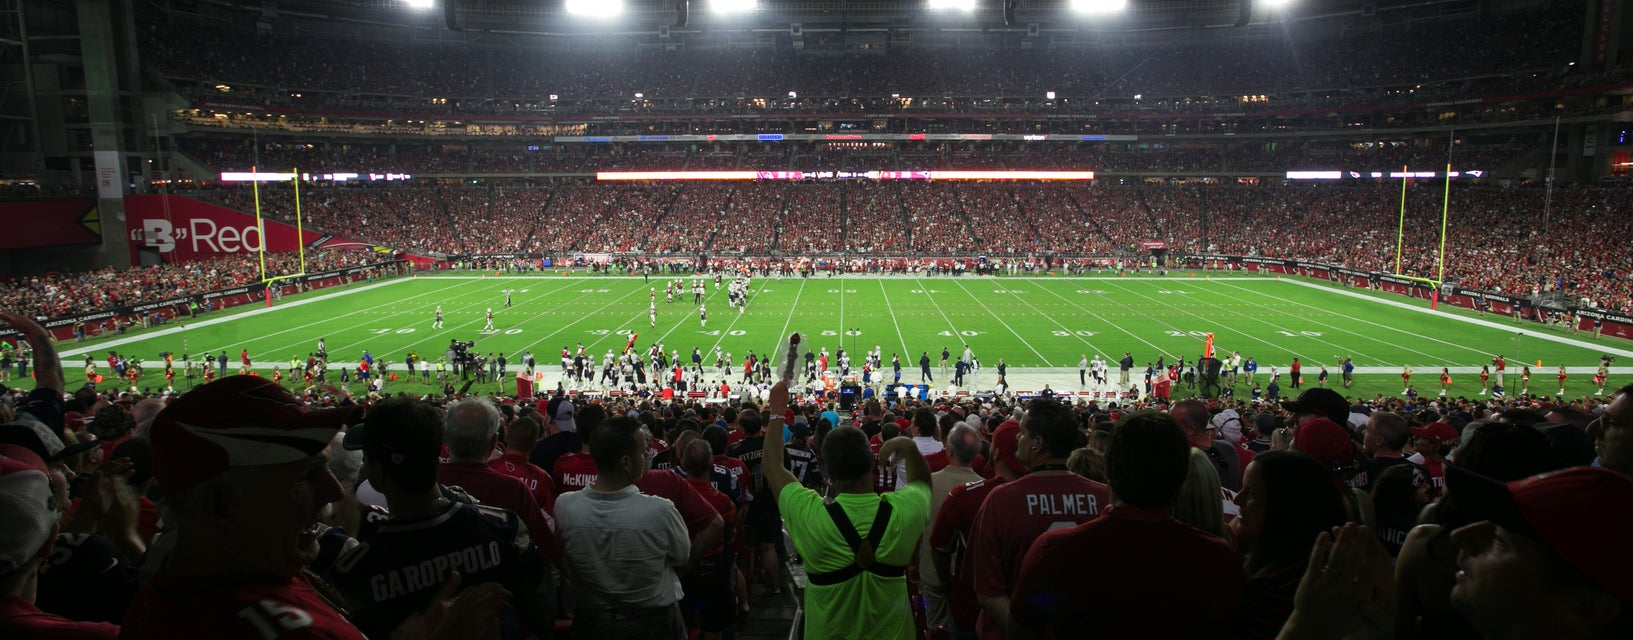 Seat view from Main Level Premier